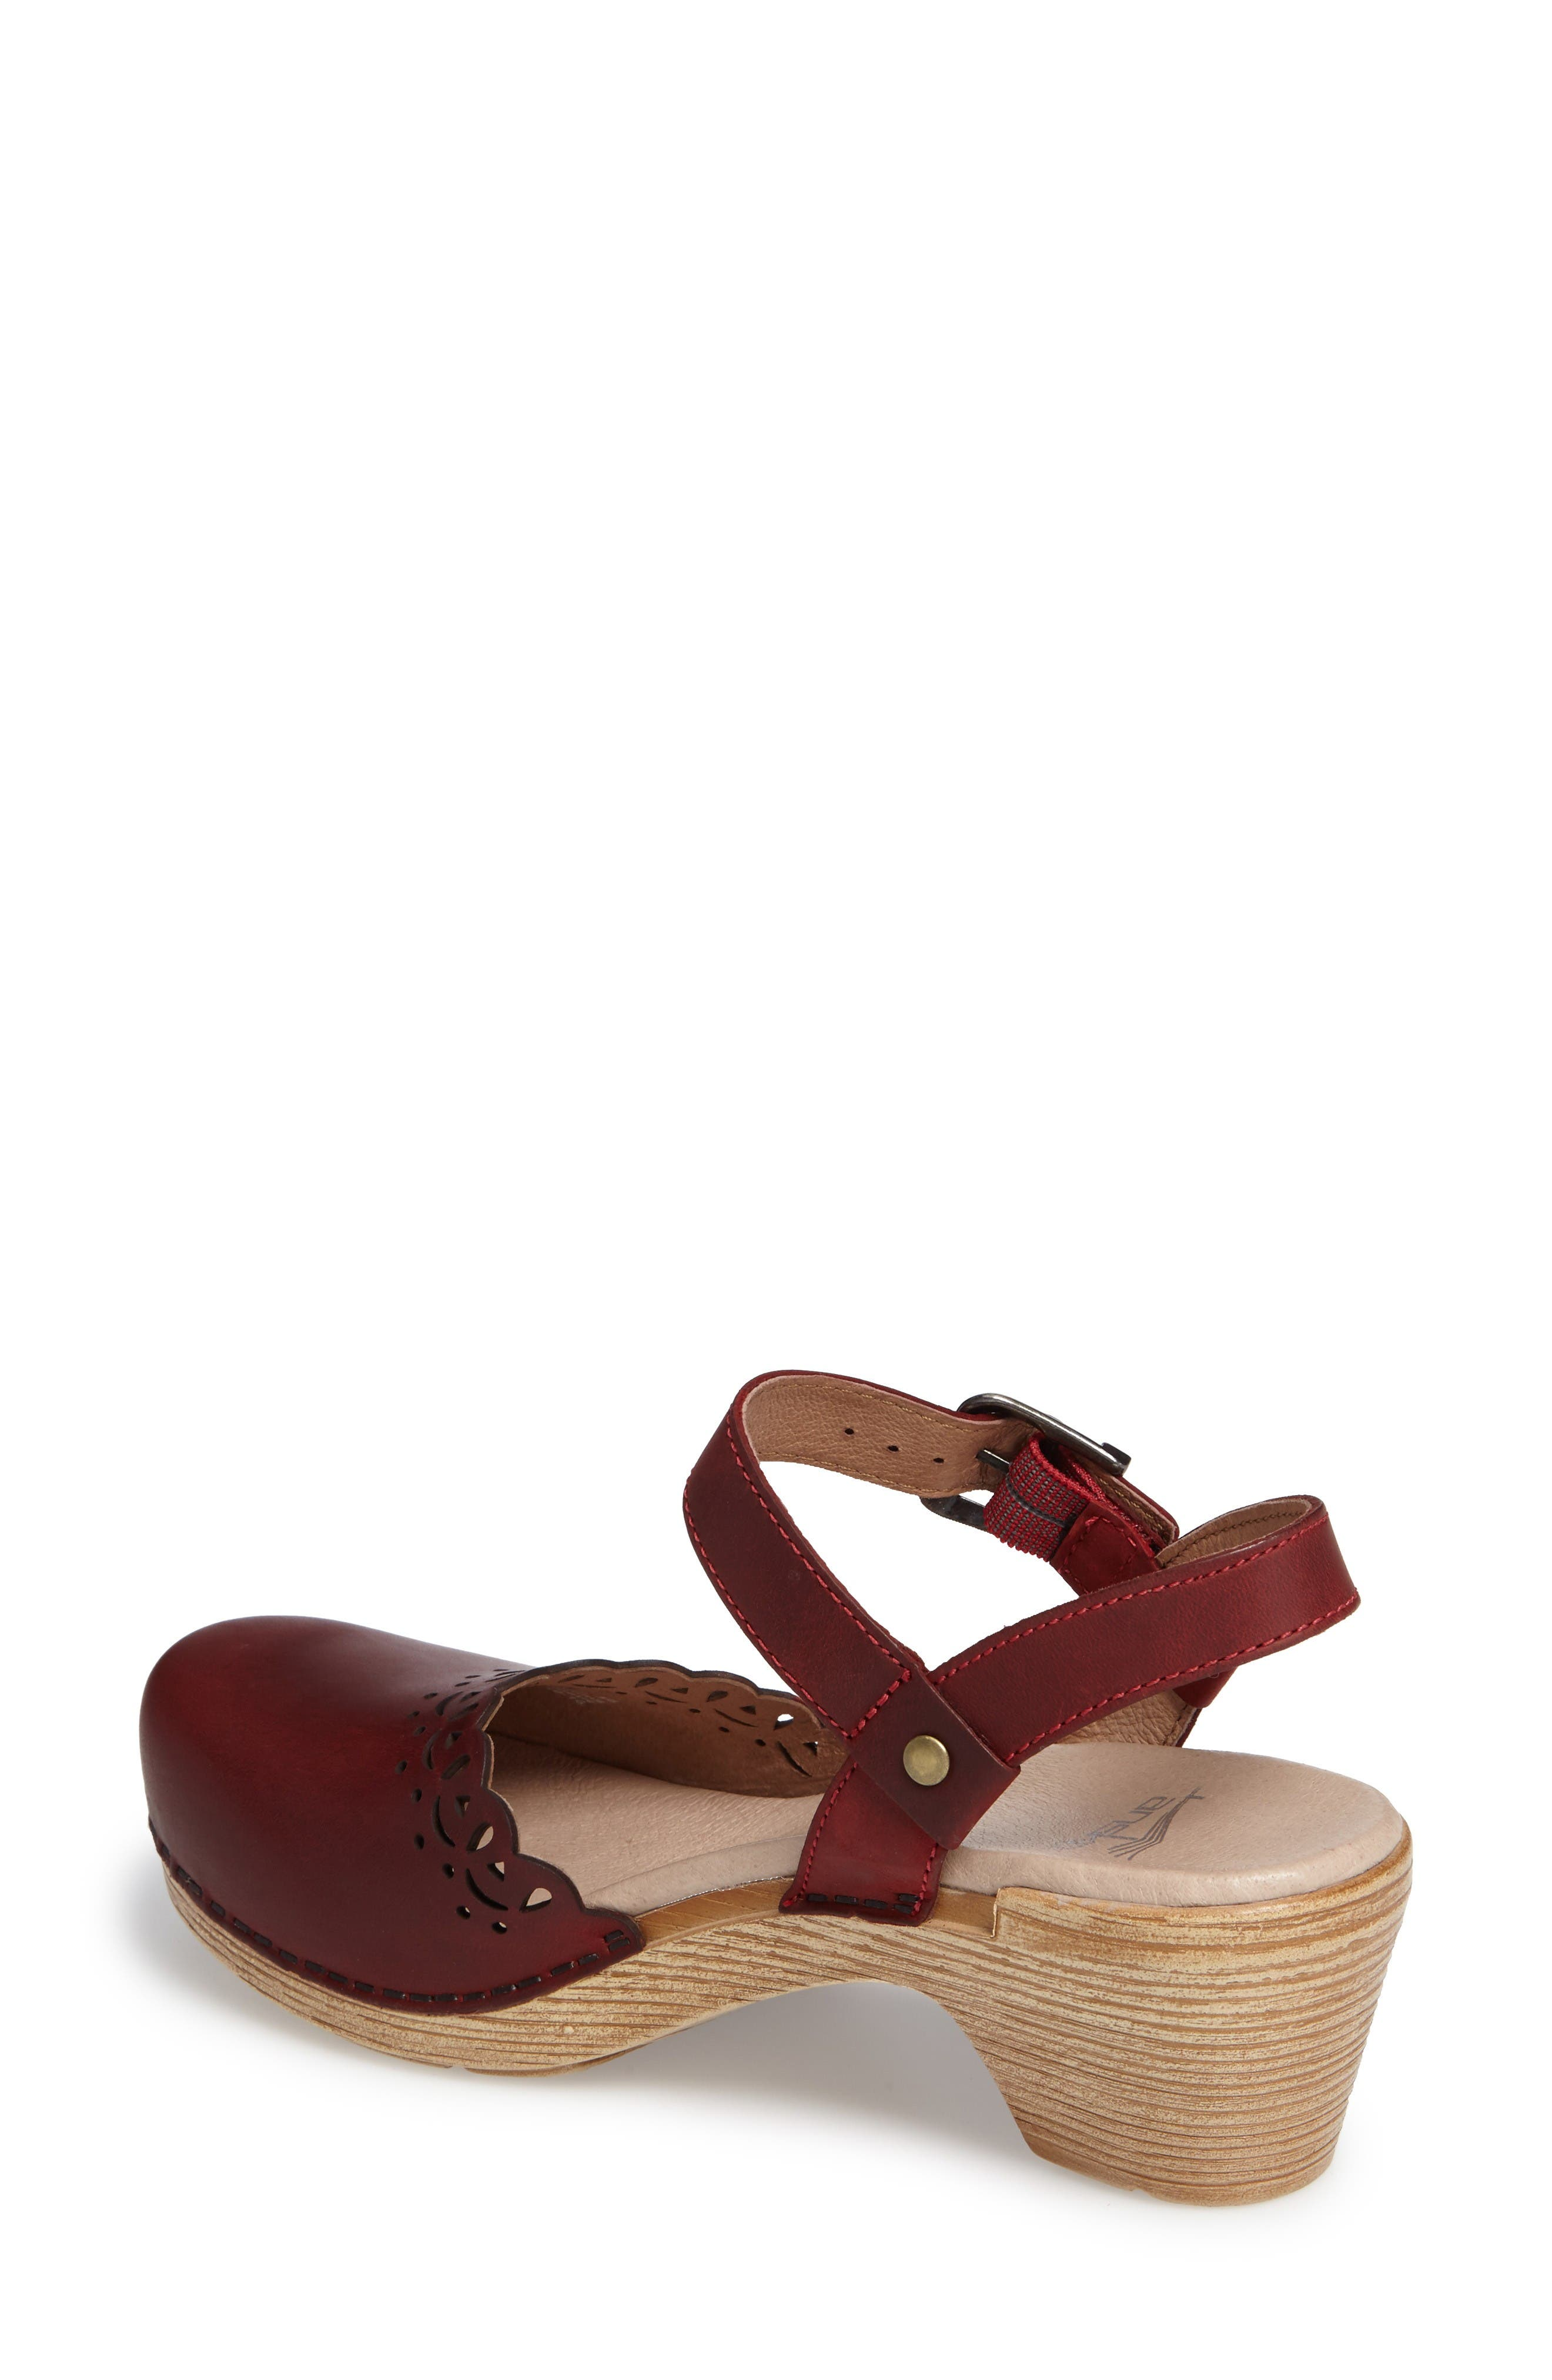 'Marta' Ankle Strap Clog,                             Alternate thumbnail 2, color,                             Red Oiled Leather